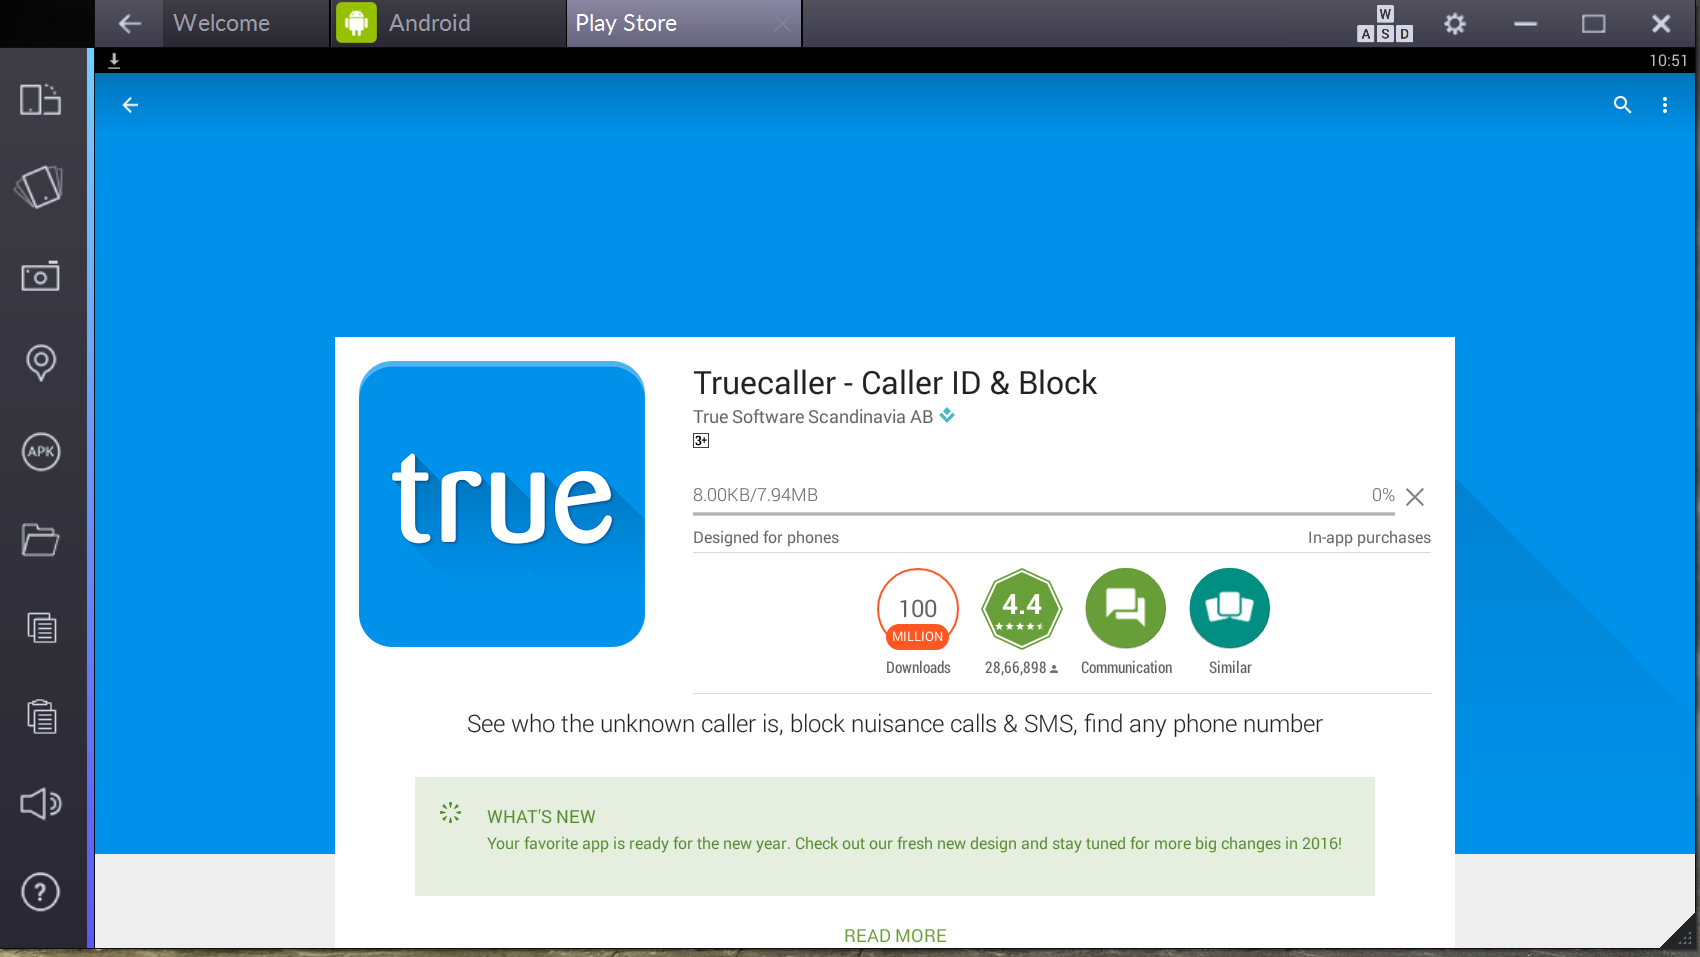 TrueCaller für PC Download kostenlos (Windows 7, 8, 8.1